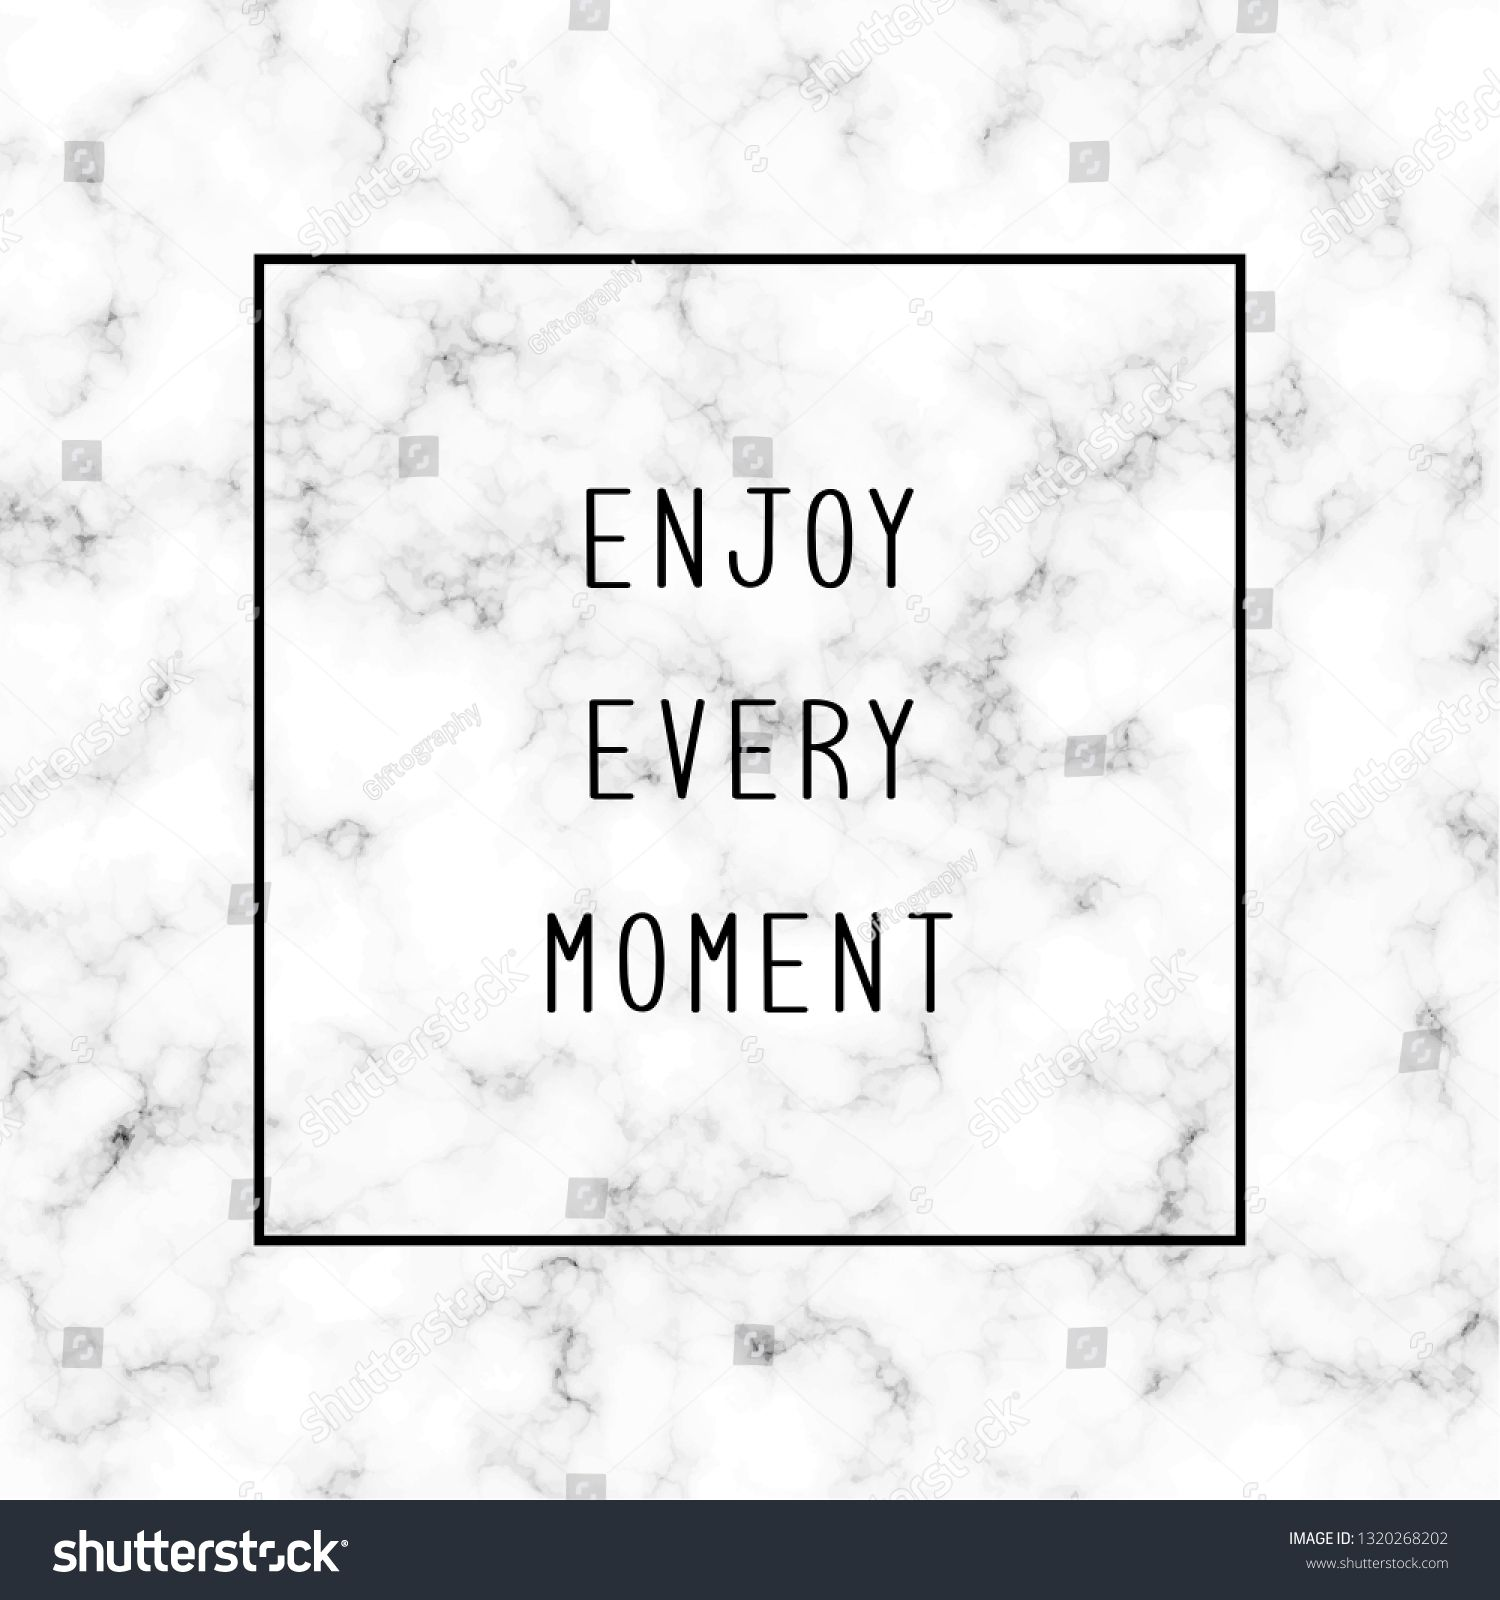 Enjoy every moment. Inspirational quote on white and grey marble